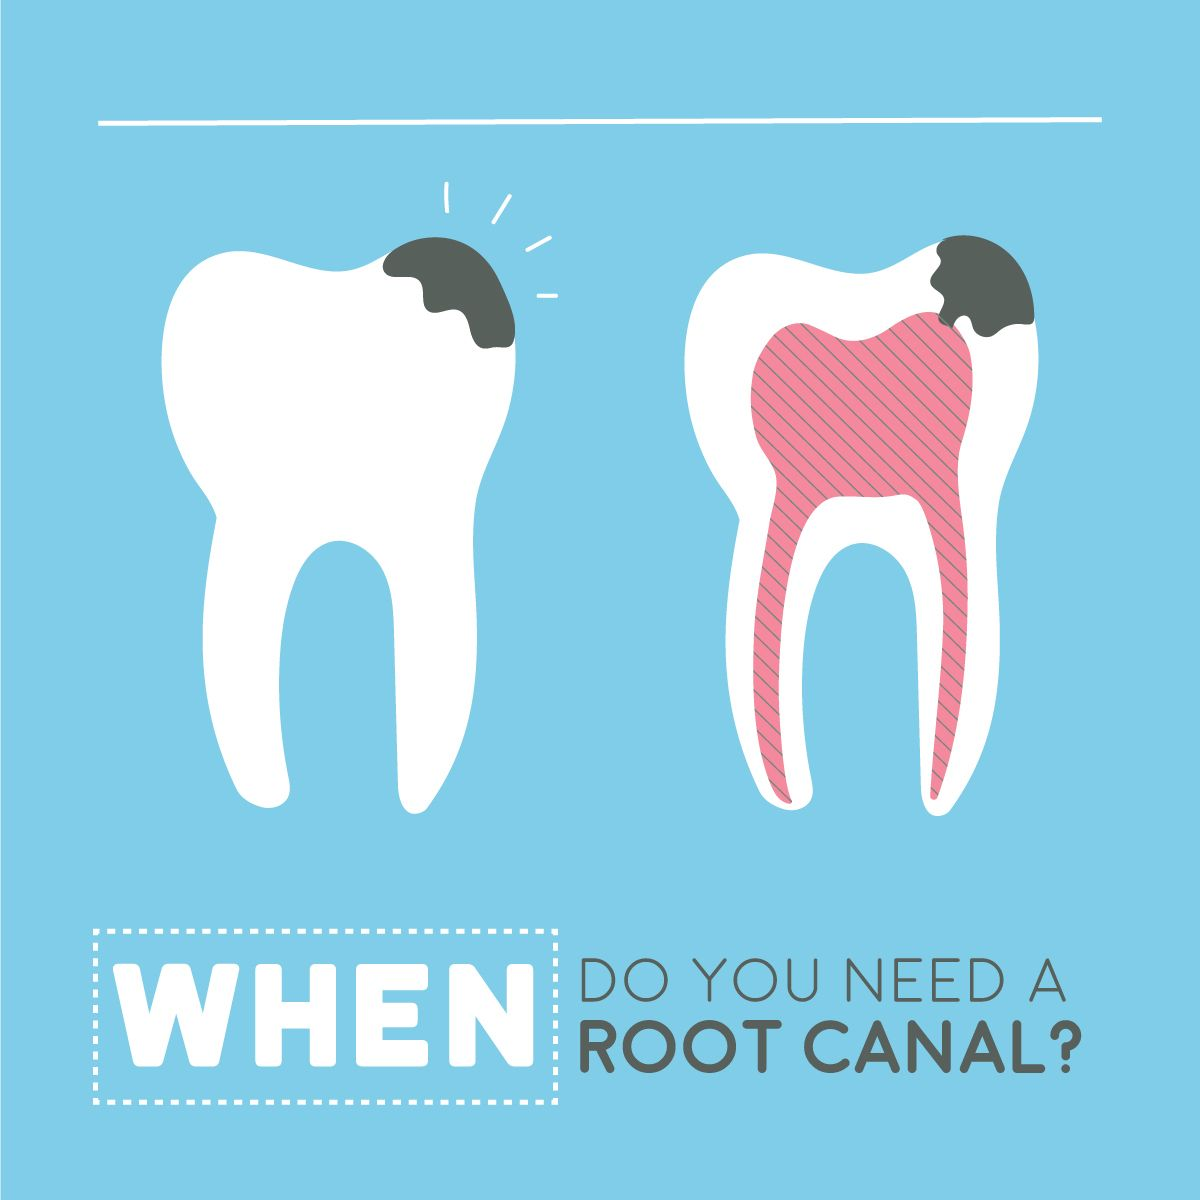 ROOT CANALS SAVE TEETH, but are widely misunderstood! They